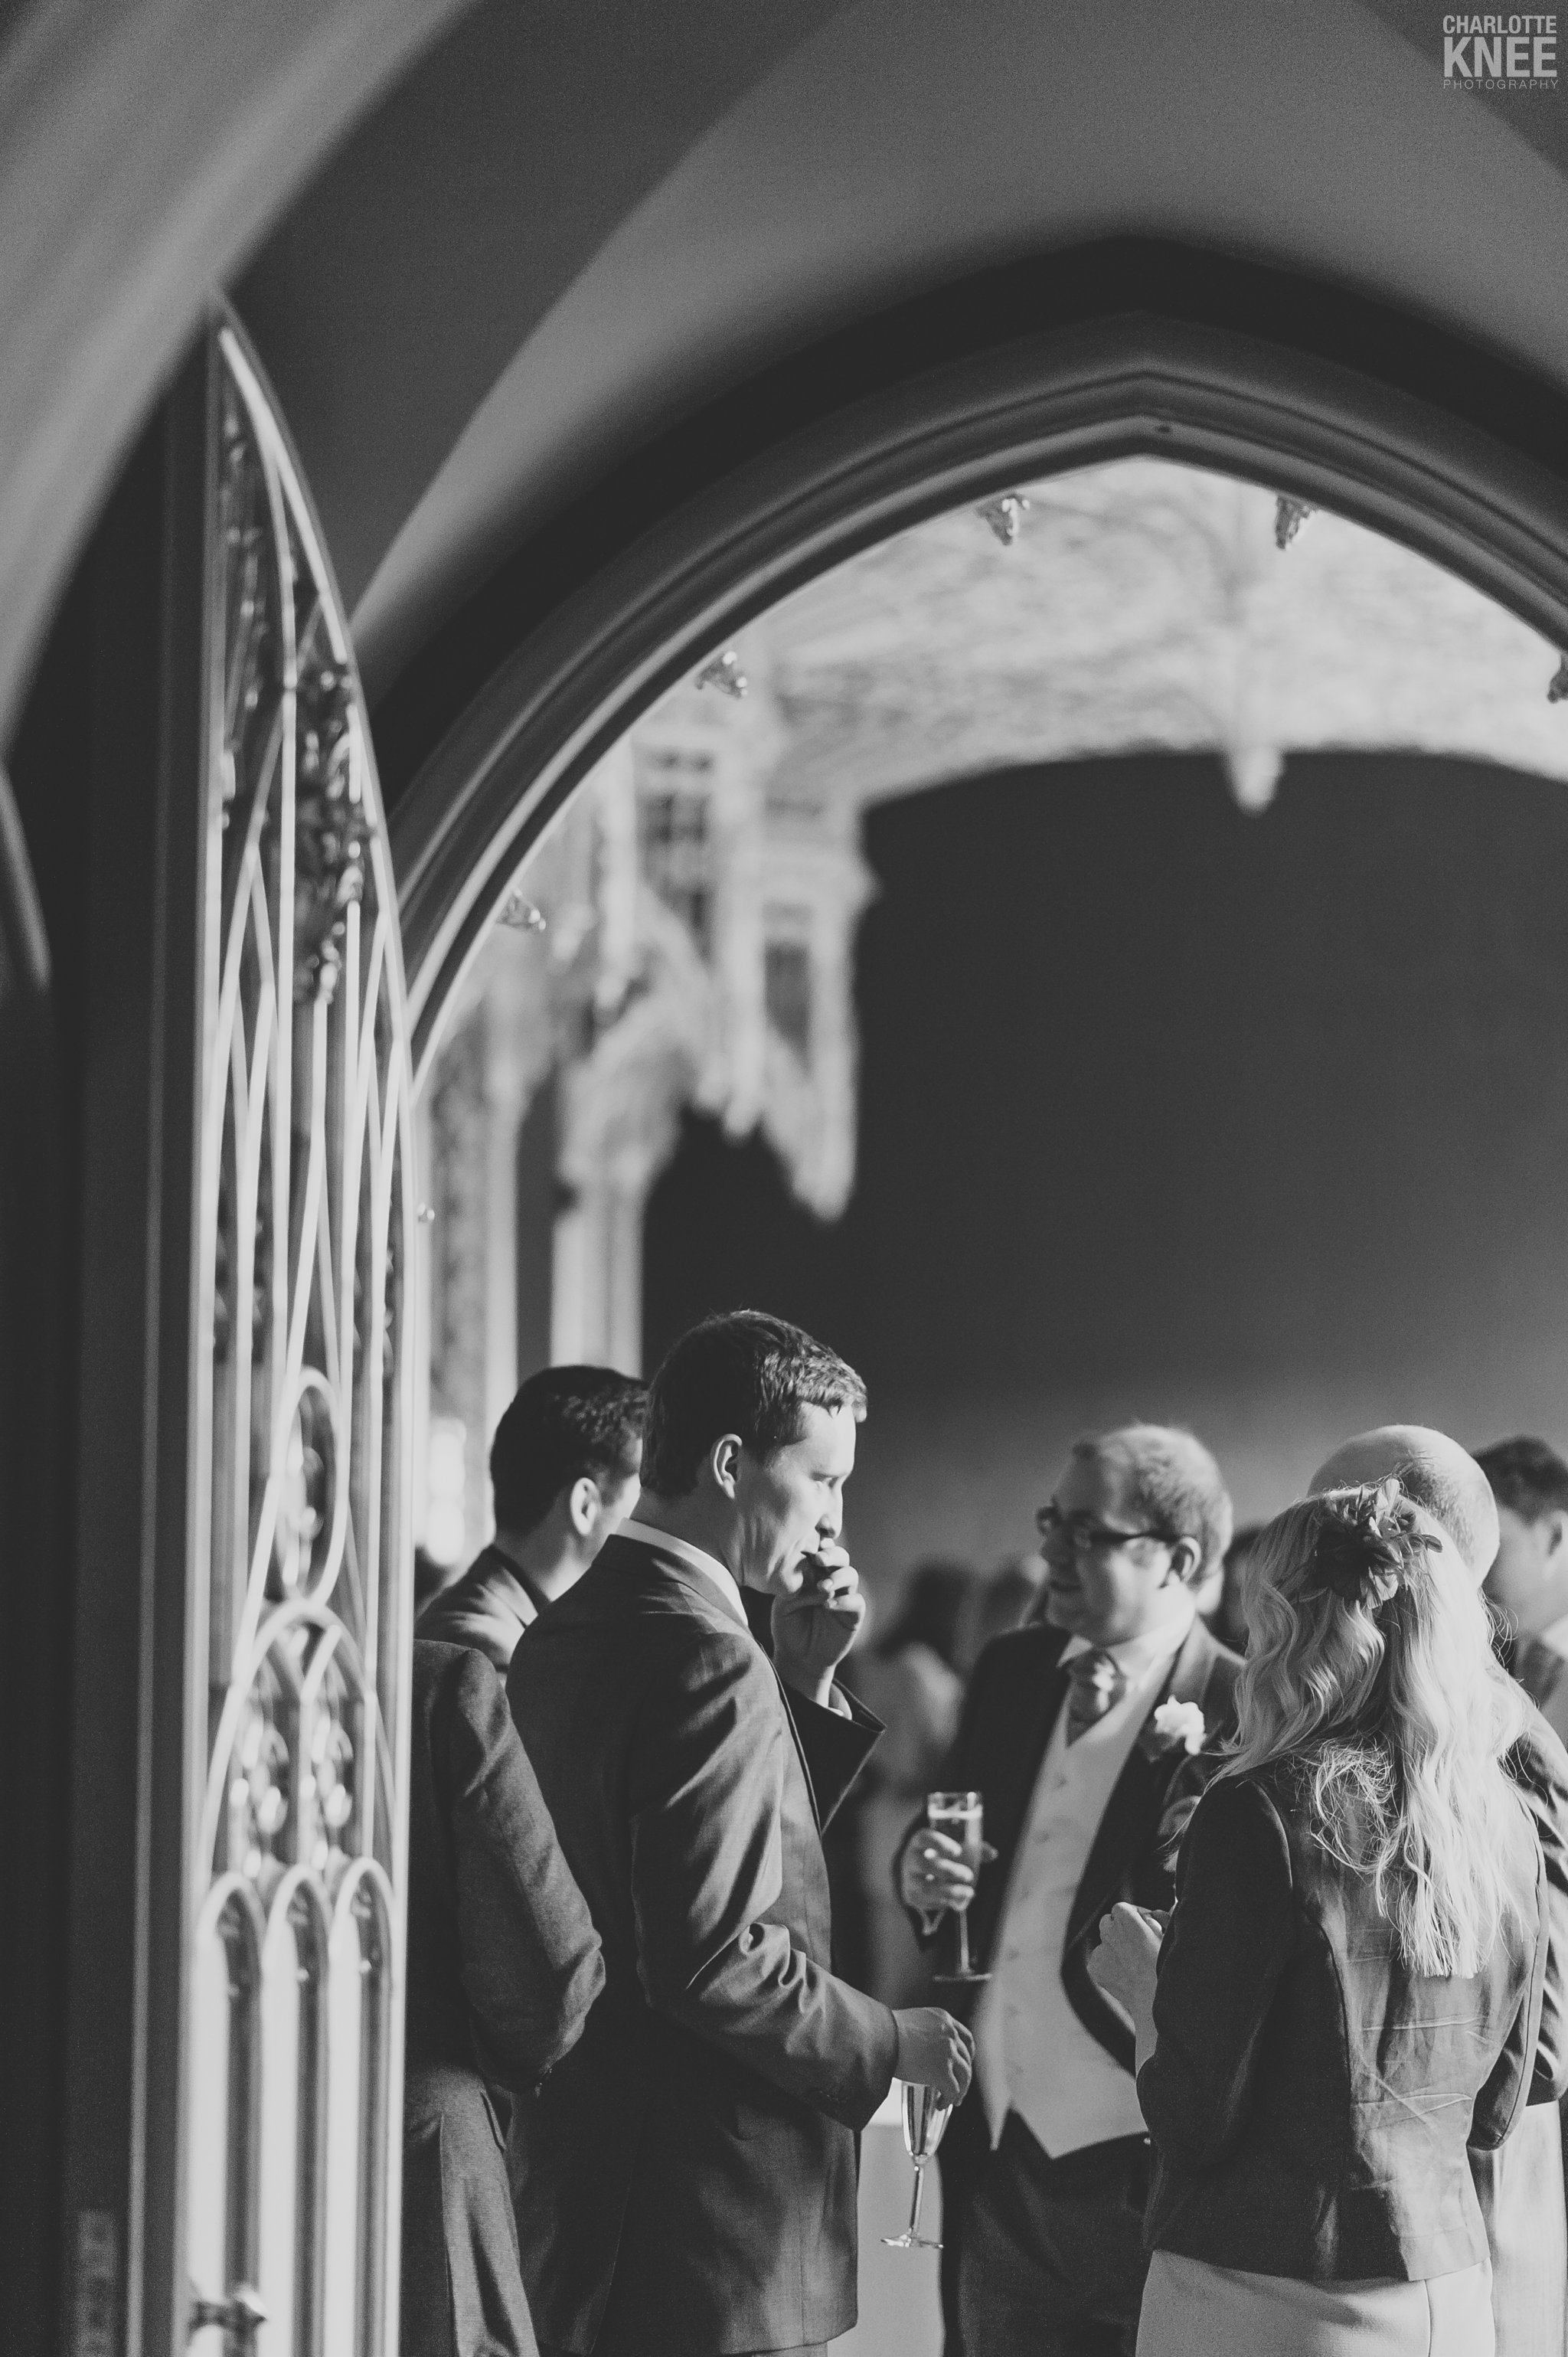 LONDON-WEDDING-PHOTOGRAPHY-STRAWBERRY-HILL-HOUSE-Charlotte-Knee-Photography_0071.jpg